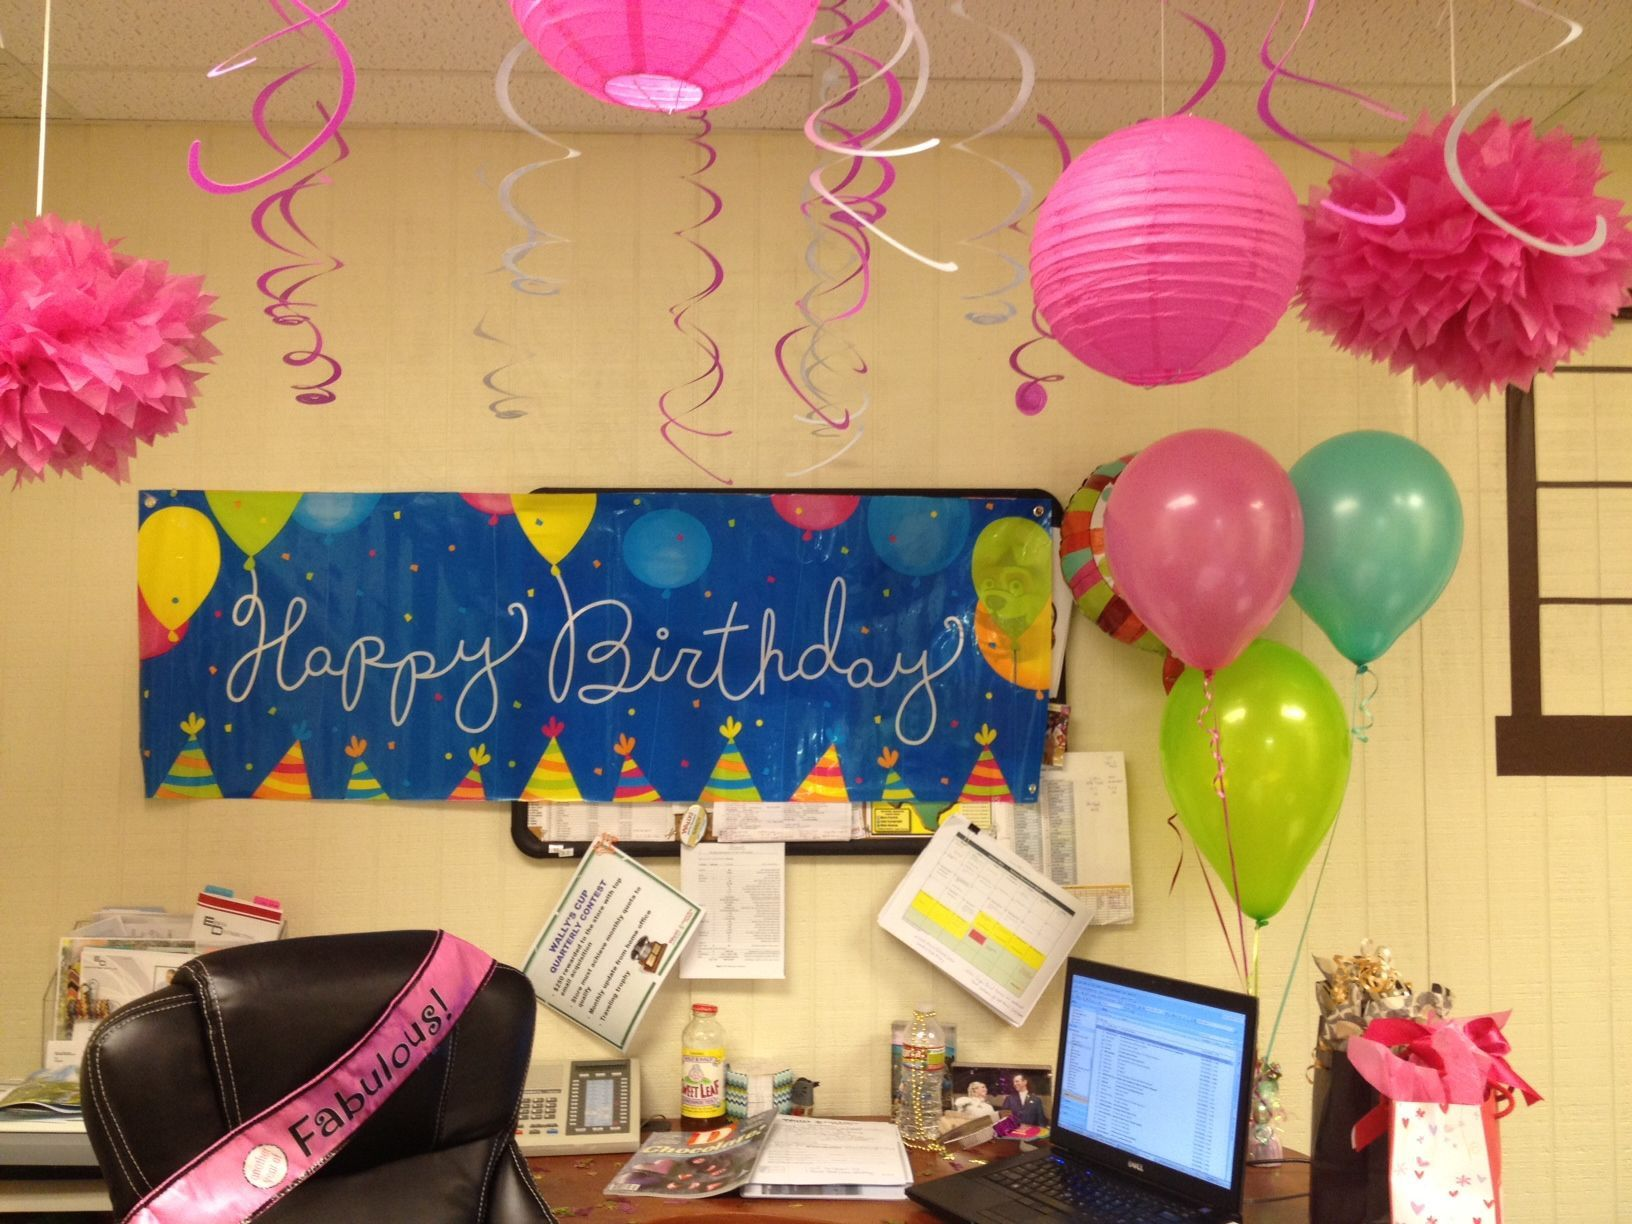 Pin By Catalina Lee On Cubicle Birthday Decor In 2020 Office